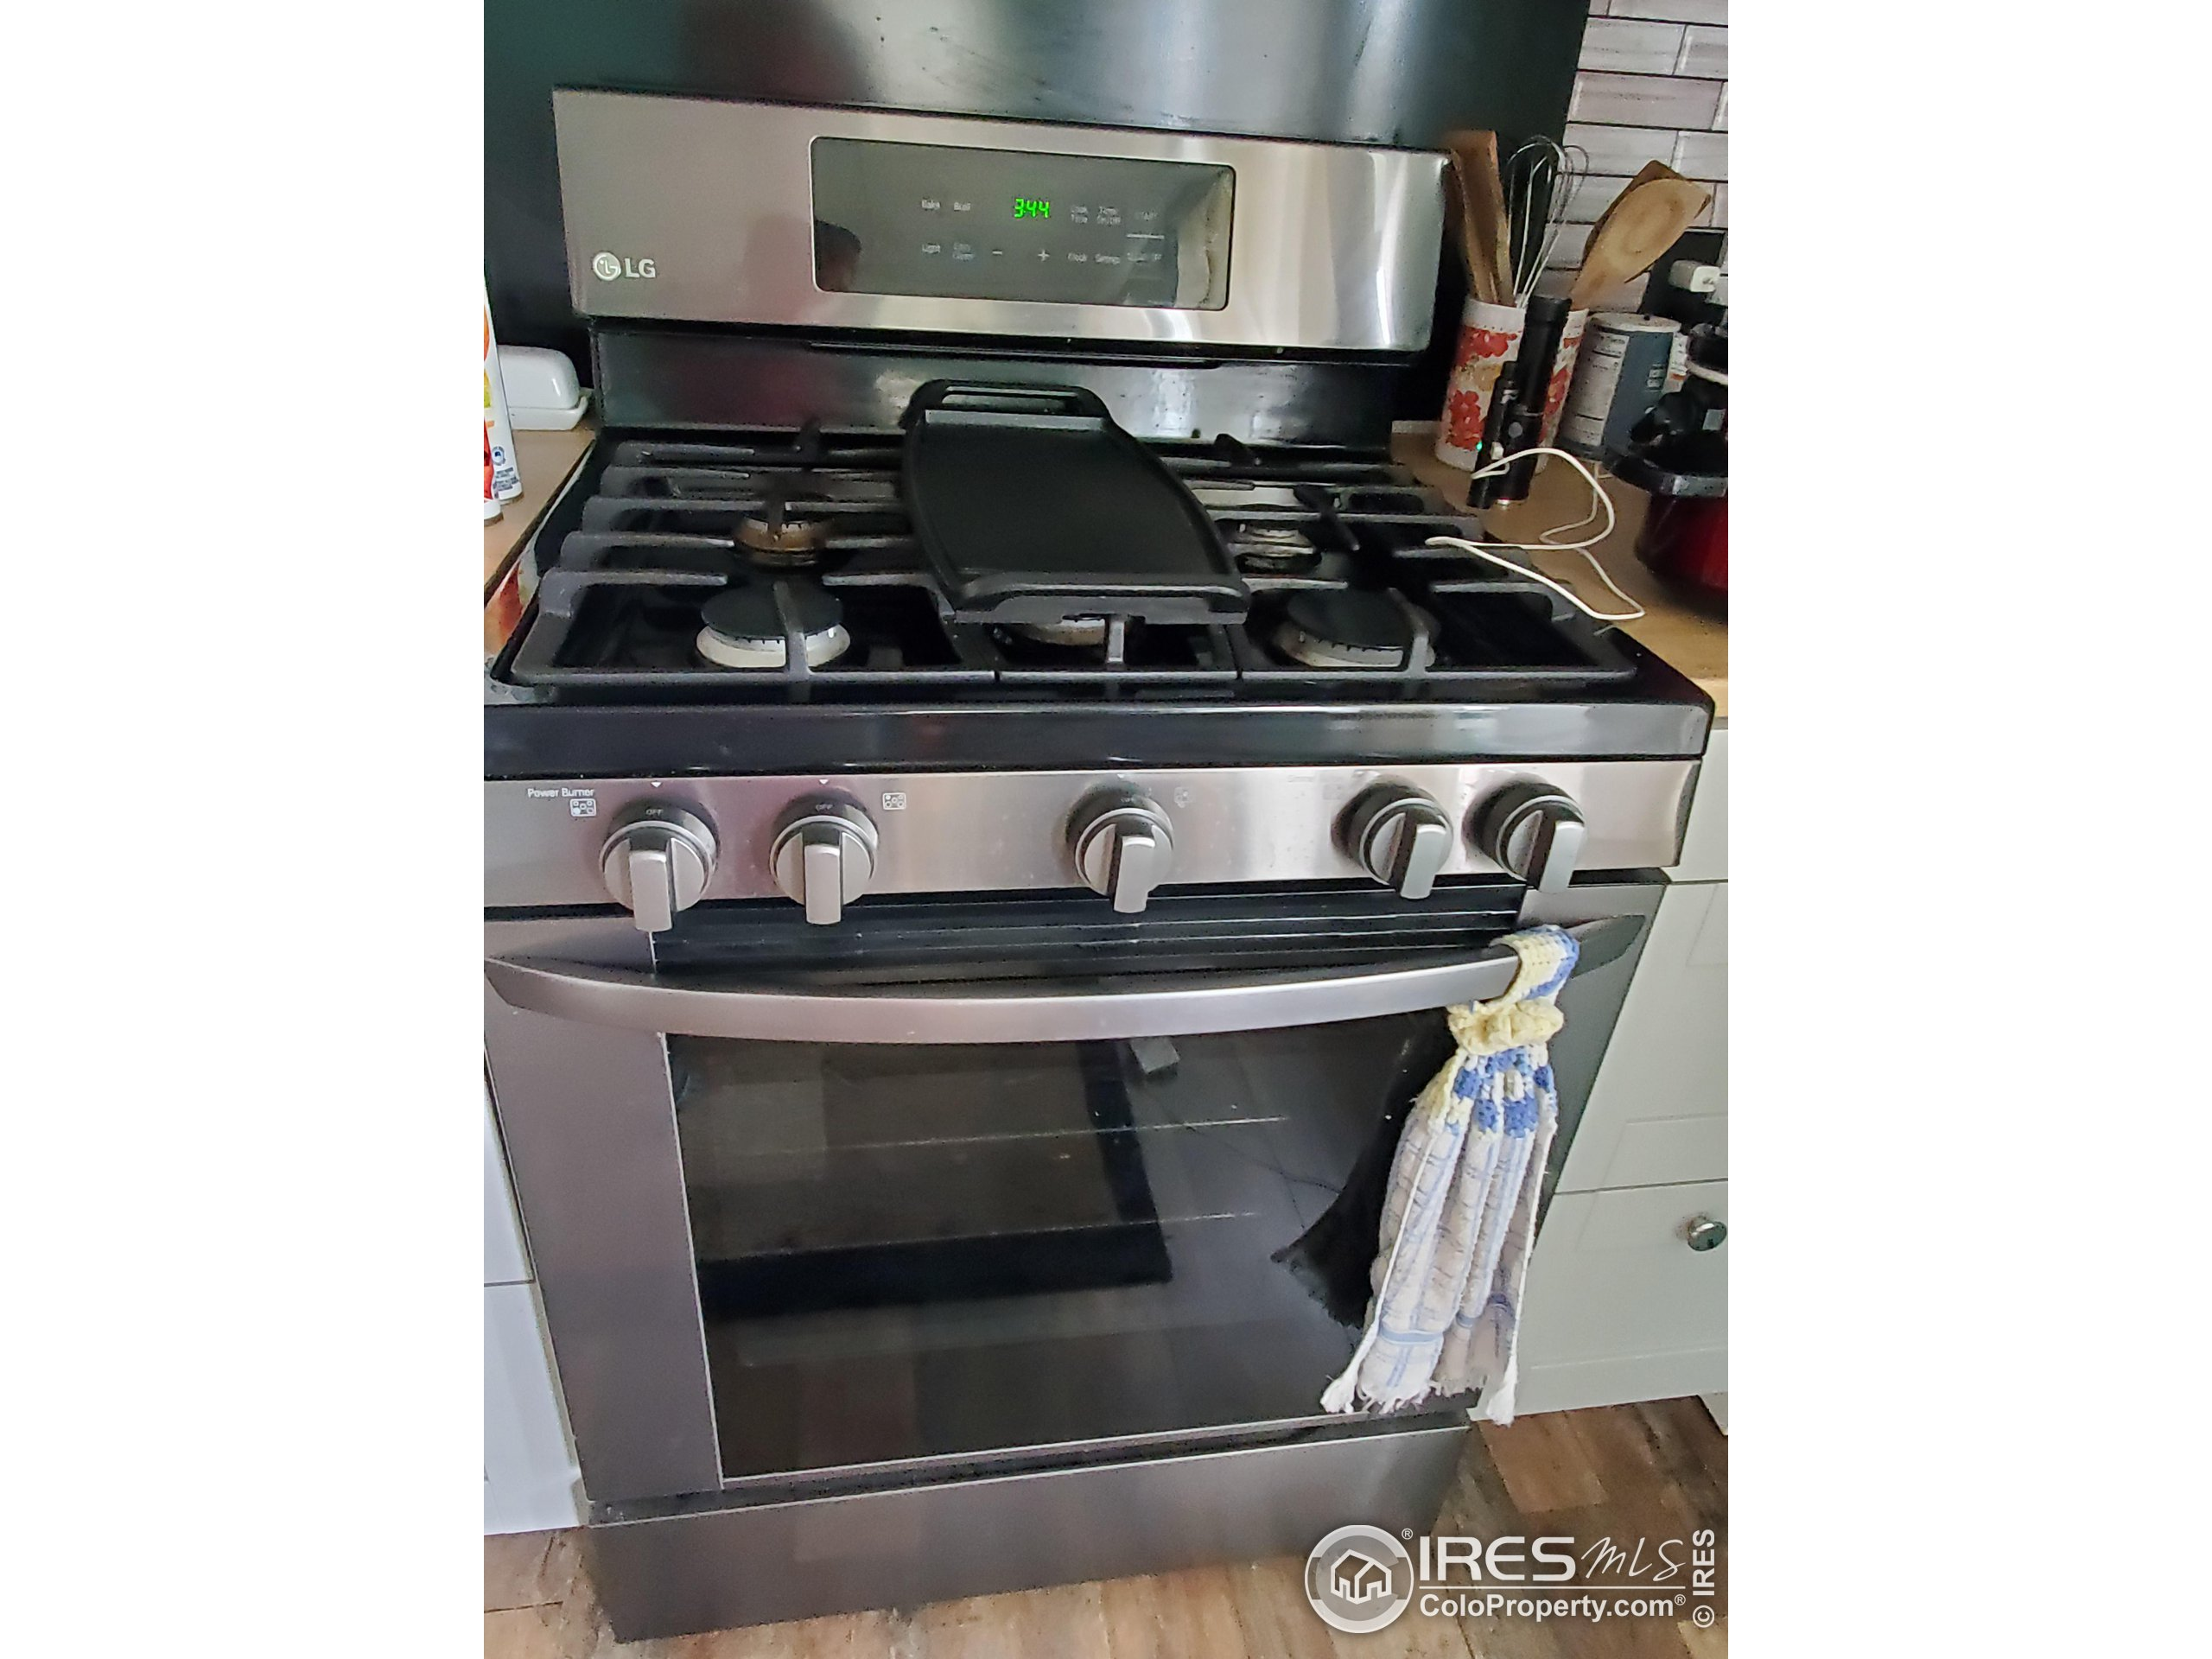 New gas stove/oven